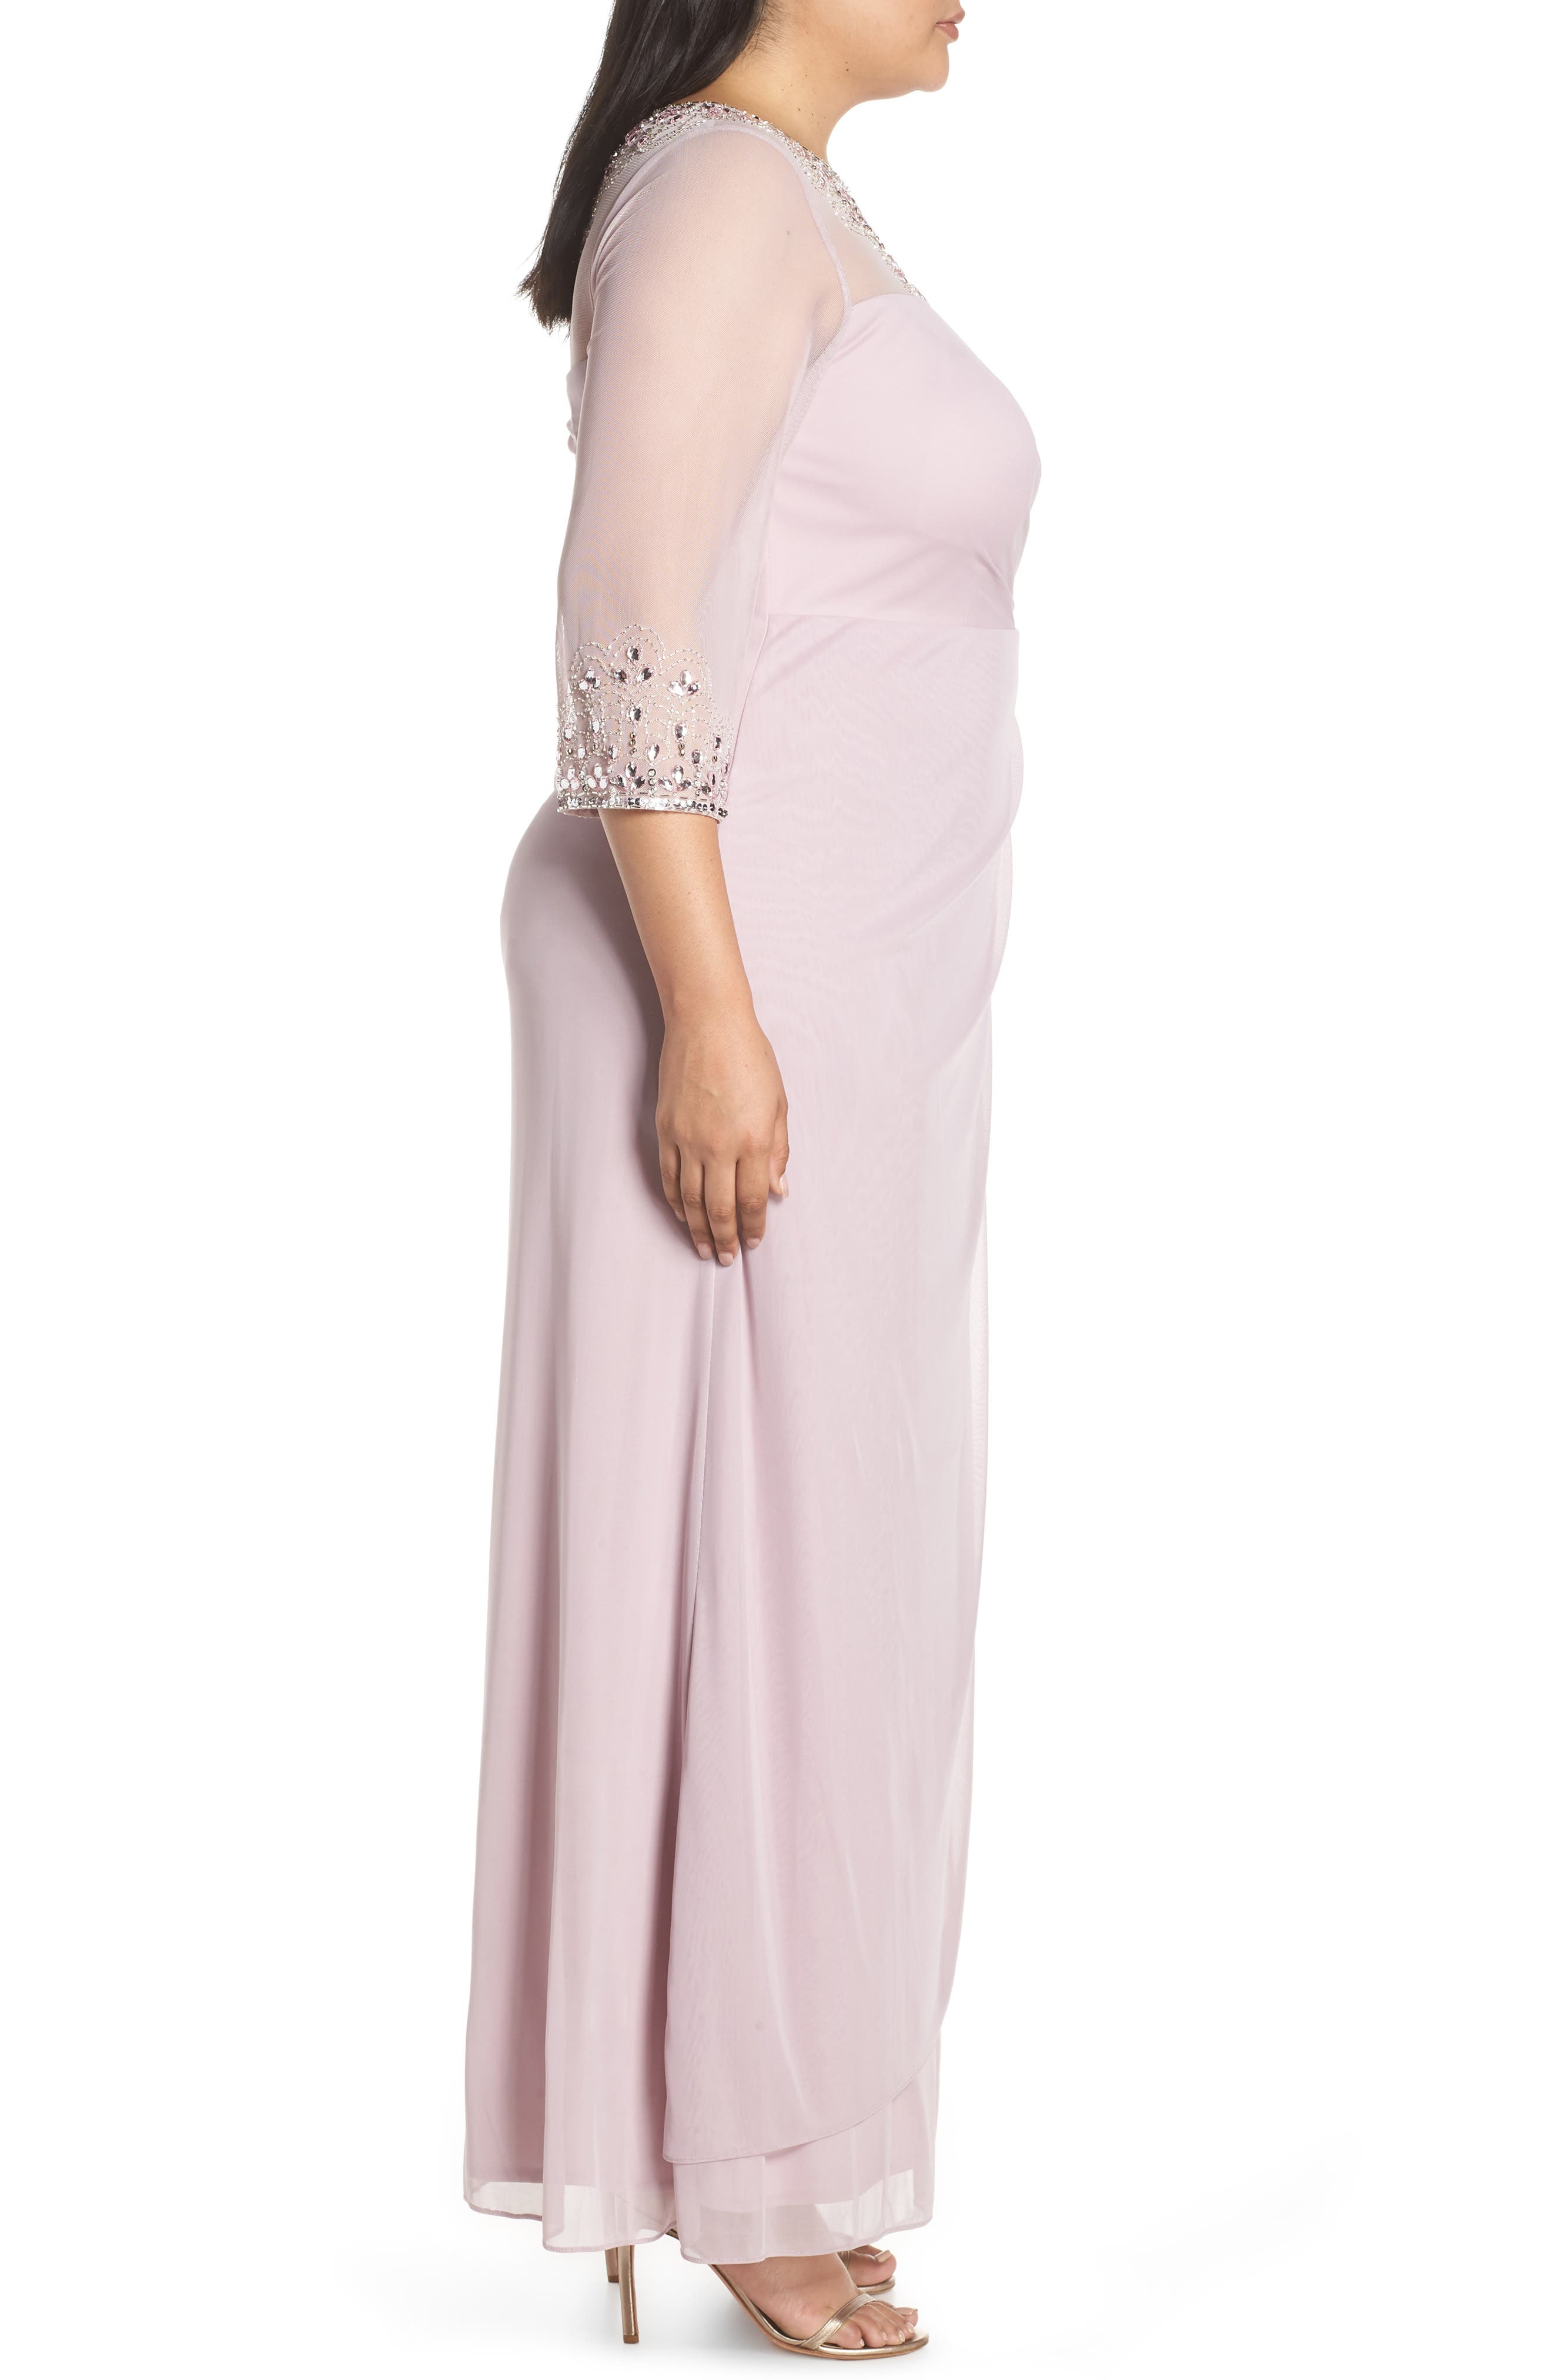 ALEX EVENINGS, Beaded Illusion Neck A-Line Gown, Alternate thumbnail 4, color, SMOKEY ORCHID